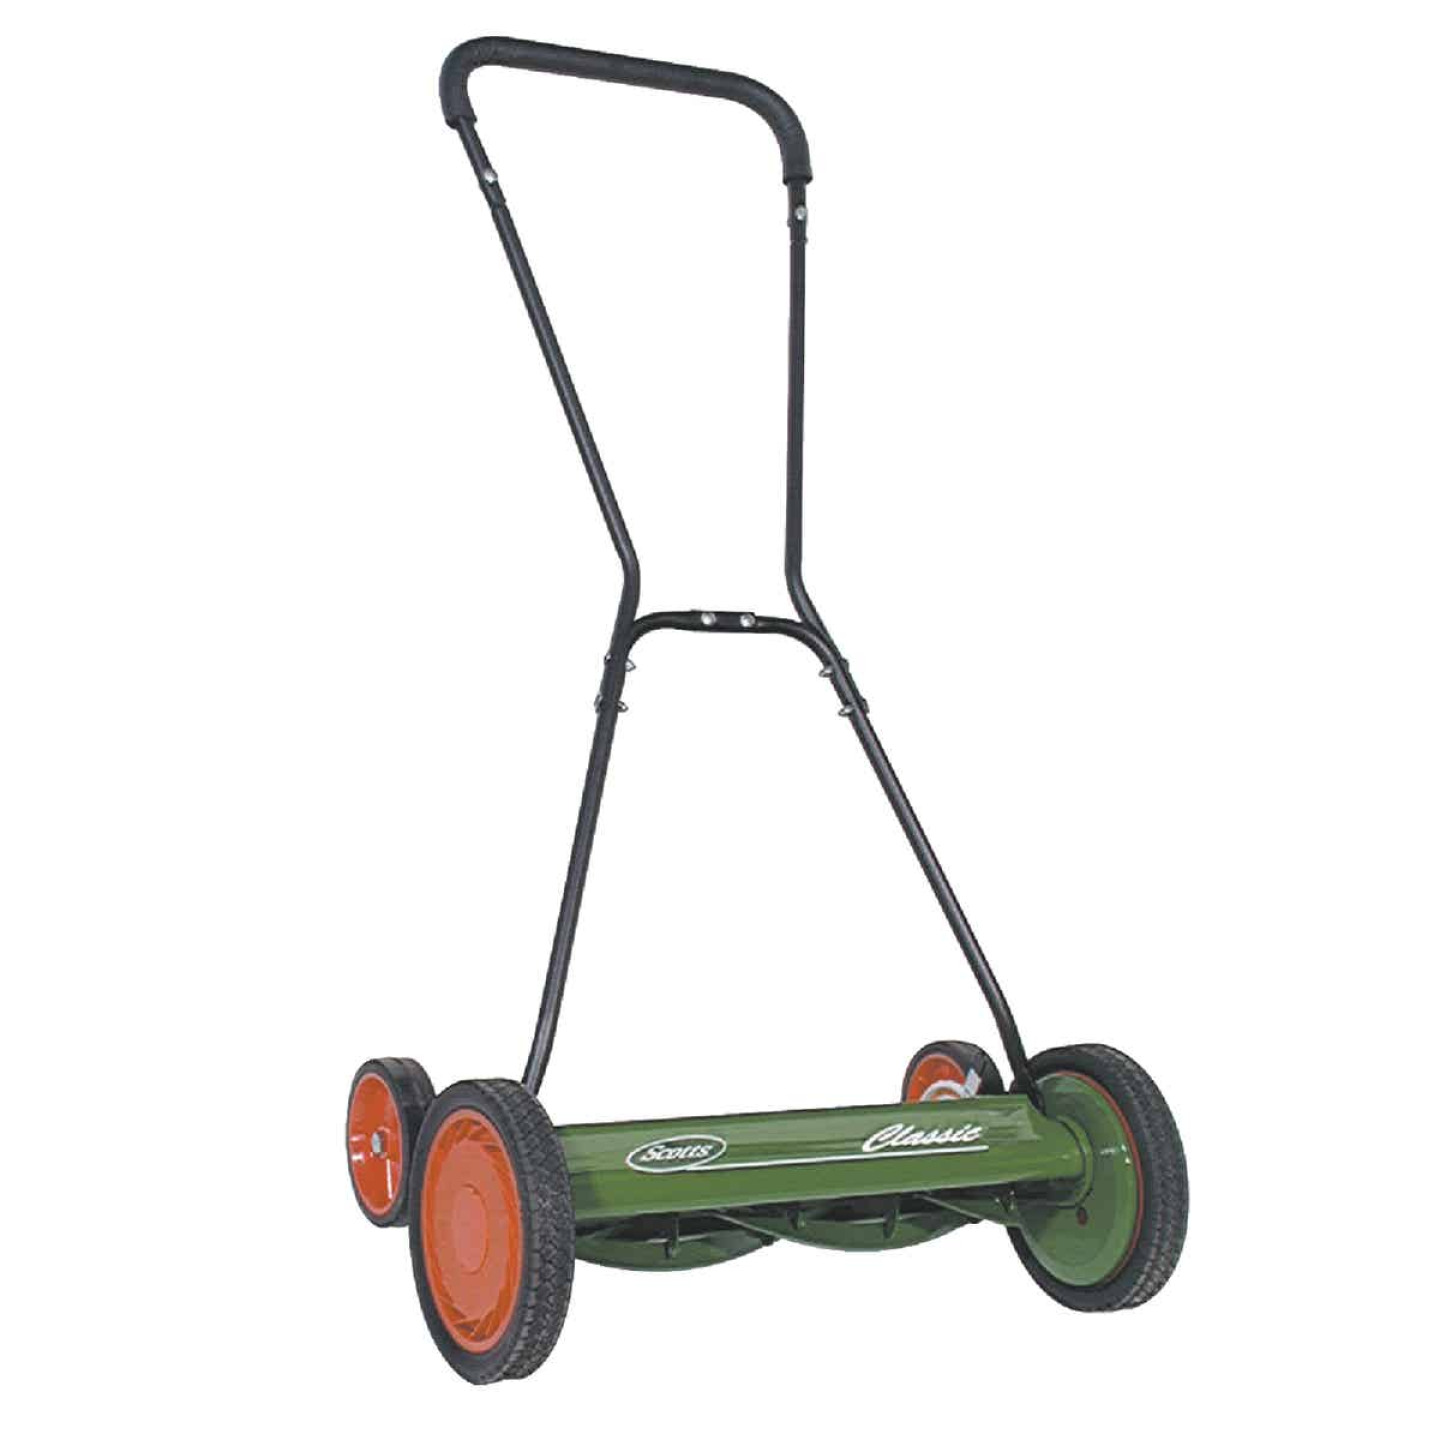 Scotts Classic 20 In. Push Reel Lawn Mower Image 2